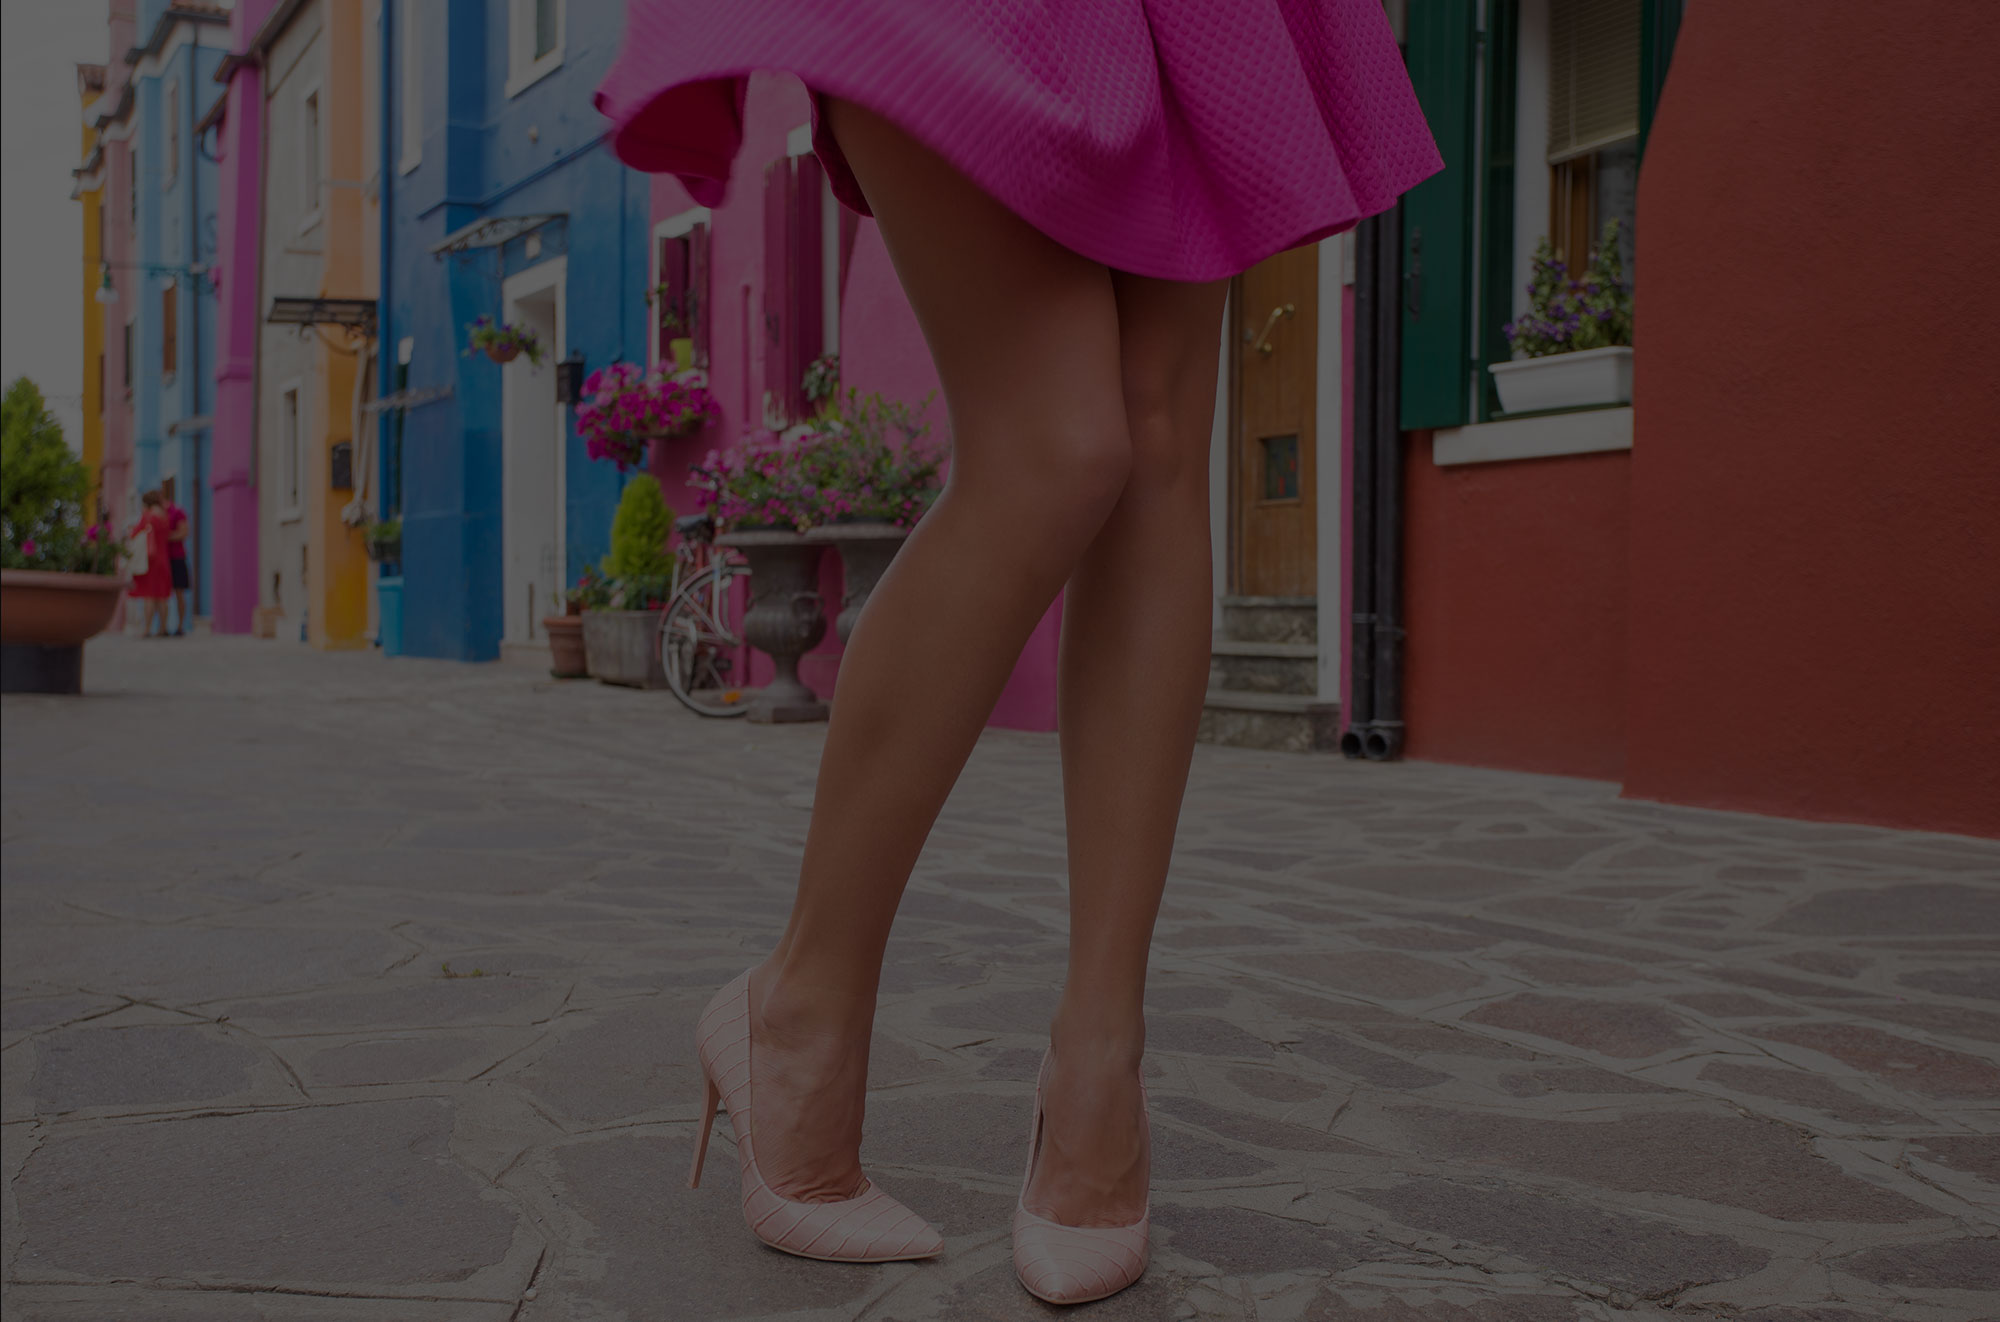 Woman wearing pink dress and high heels on village street.